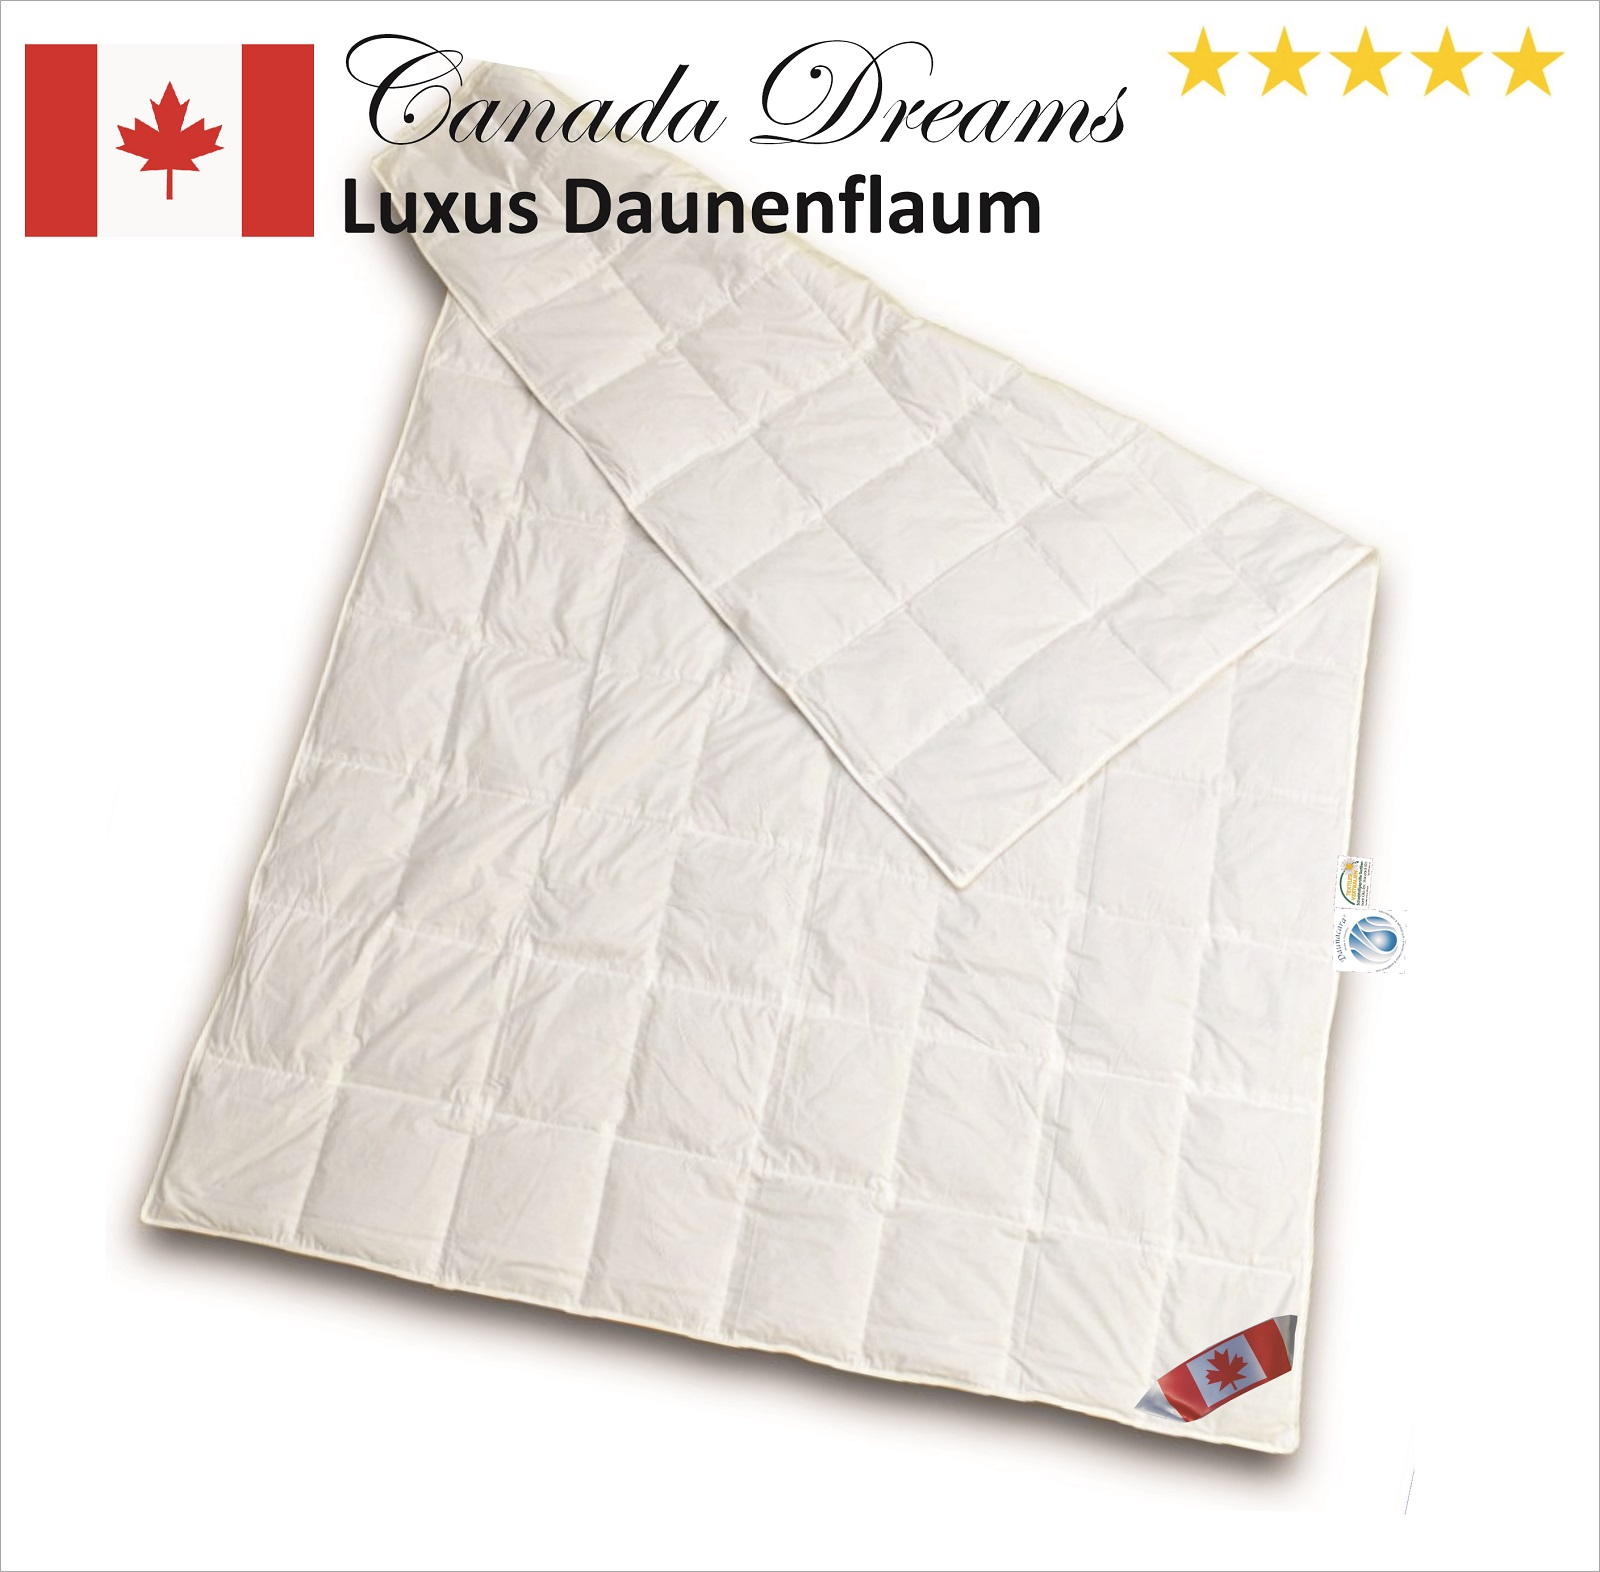 Canada Dreams Luxus Übergangs Daunendecke Daunenflaum CD 2 220x240